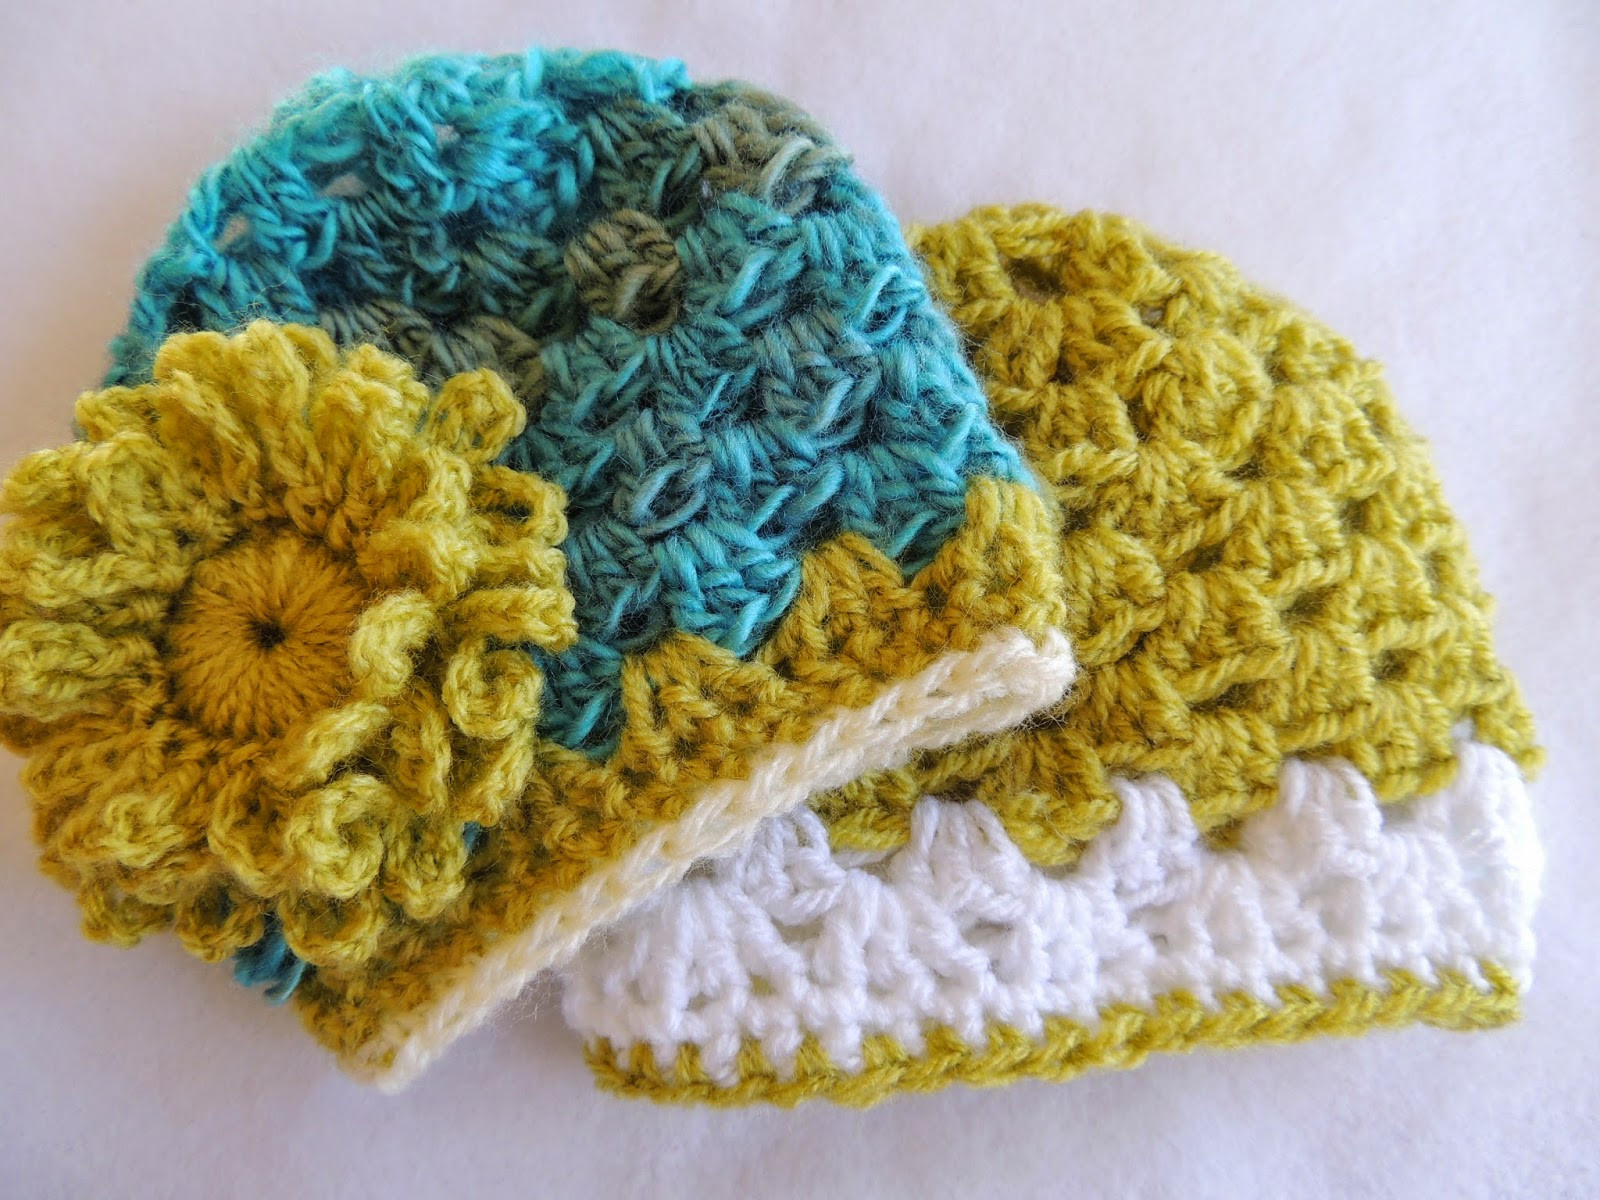 Awesome Susan S Hippie Crochet Updated Granny Hat and A New Free Free Hippie Crochet Patterns Of New 49 Pictures Free Hippie Crochet Patterns